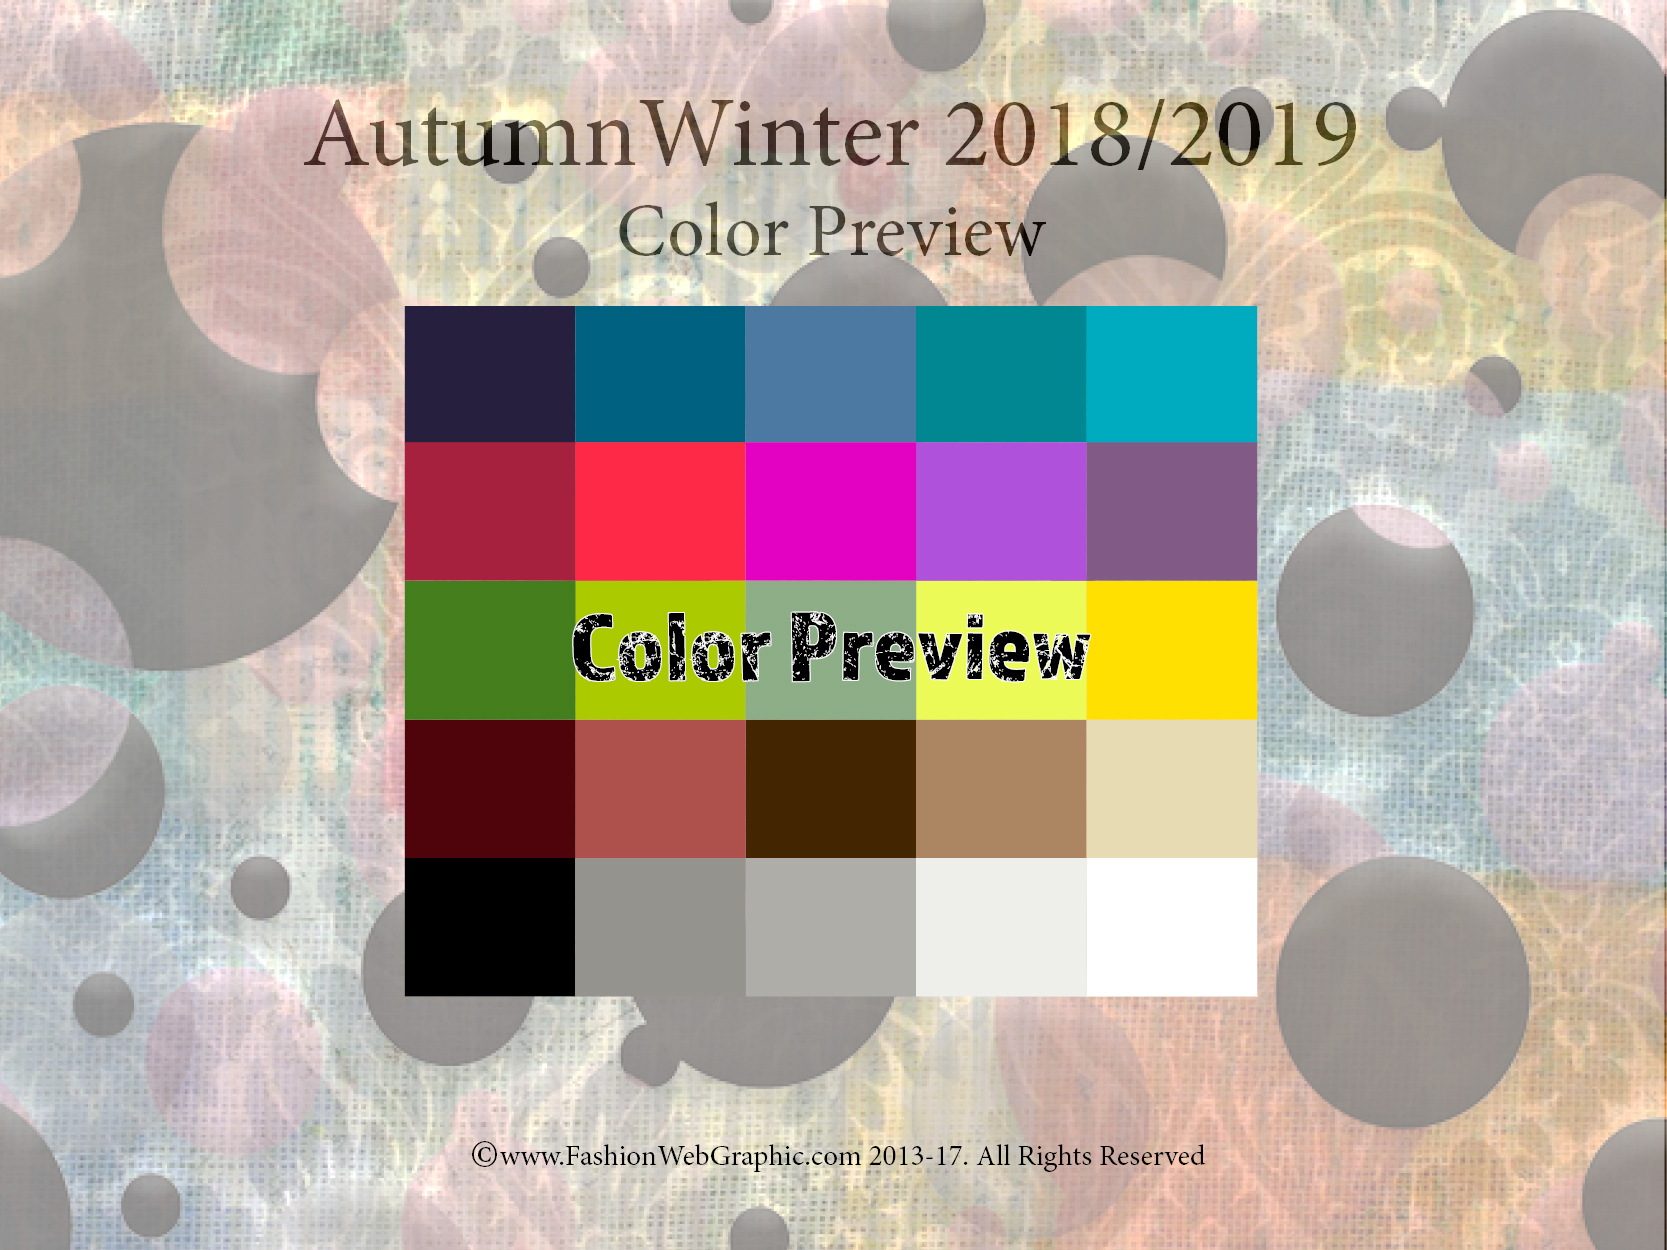 Color Trends Fall 2018 Aw2018 2019 Trend Forecasting On Behance